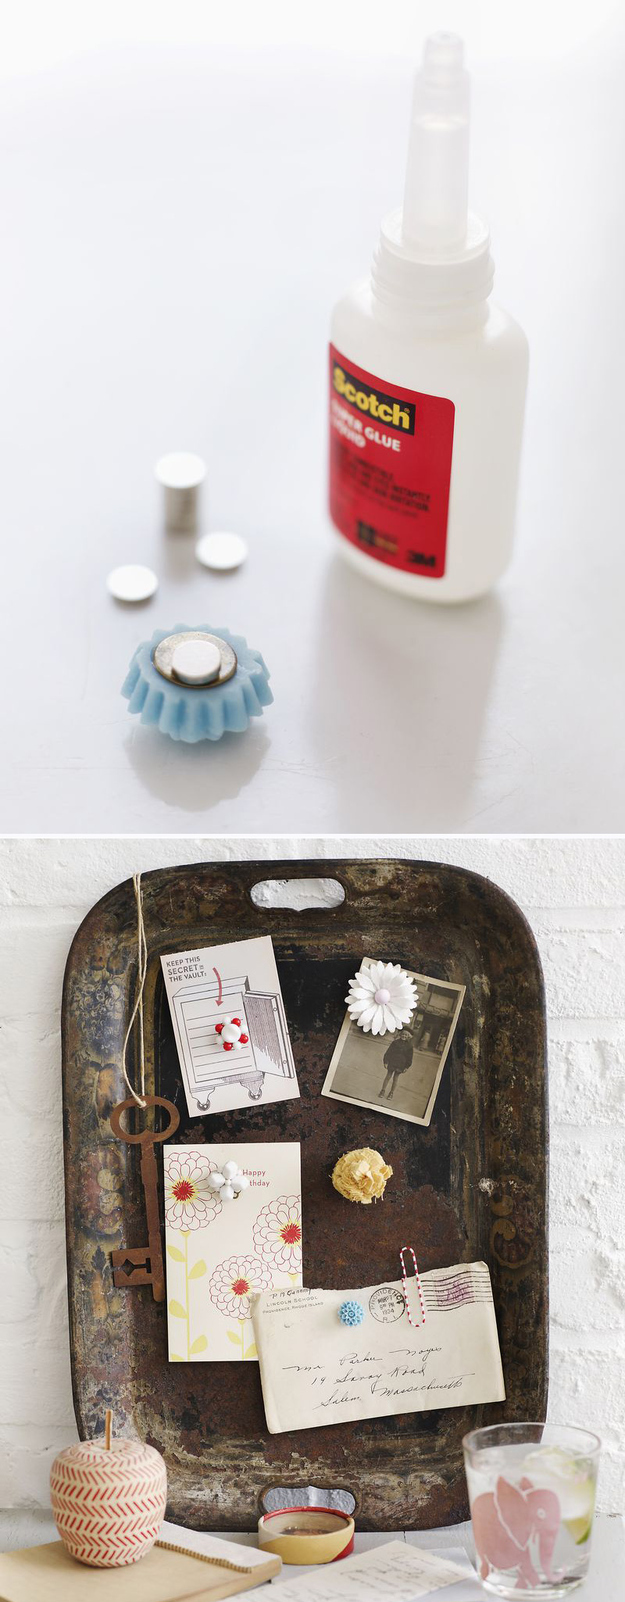 How to Recycle Broken Things diy crafts